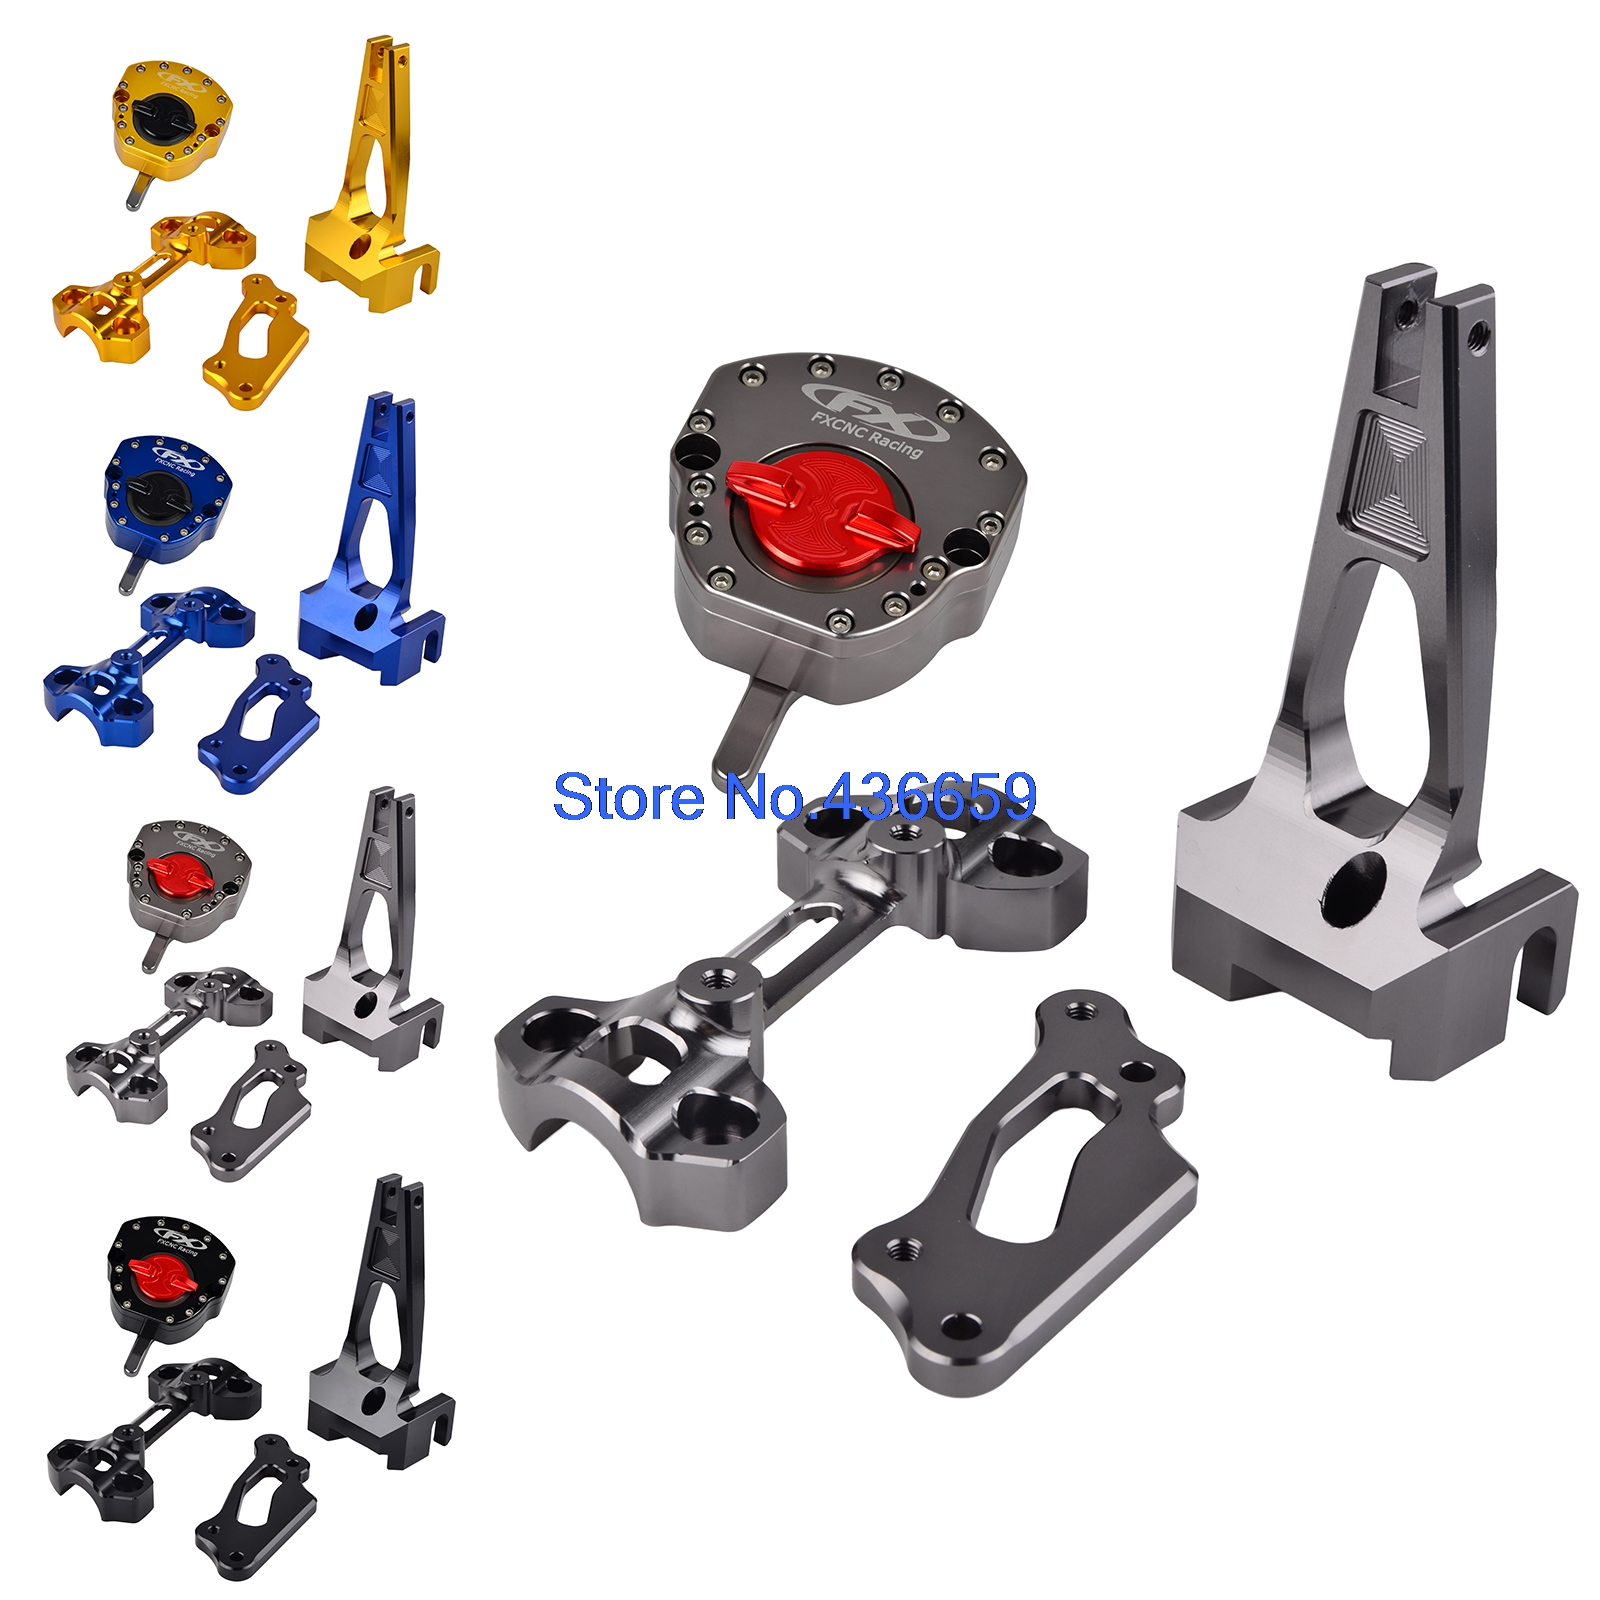 Motorcycle Steering Damper Stabilizer Mount Bracket Kits For Yamaha MT09 MT-09 Street Rally  FZ09 FZ-09 2014 2015 2016 for yamaha mt 09 tracer 2015 2016 fj 09 tracer 2015 2016 steering damper stabilizer with mount bracket